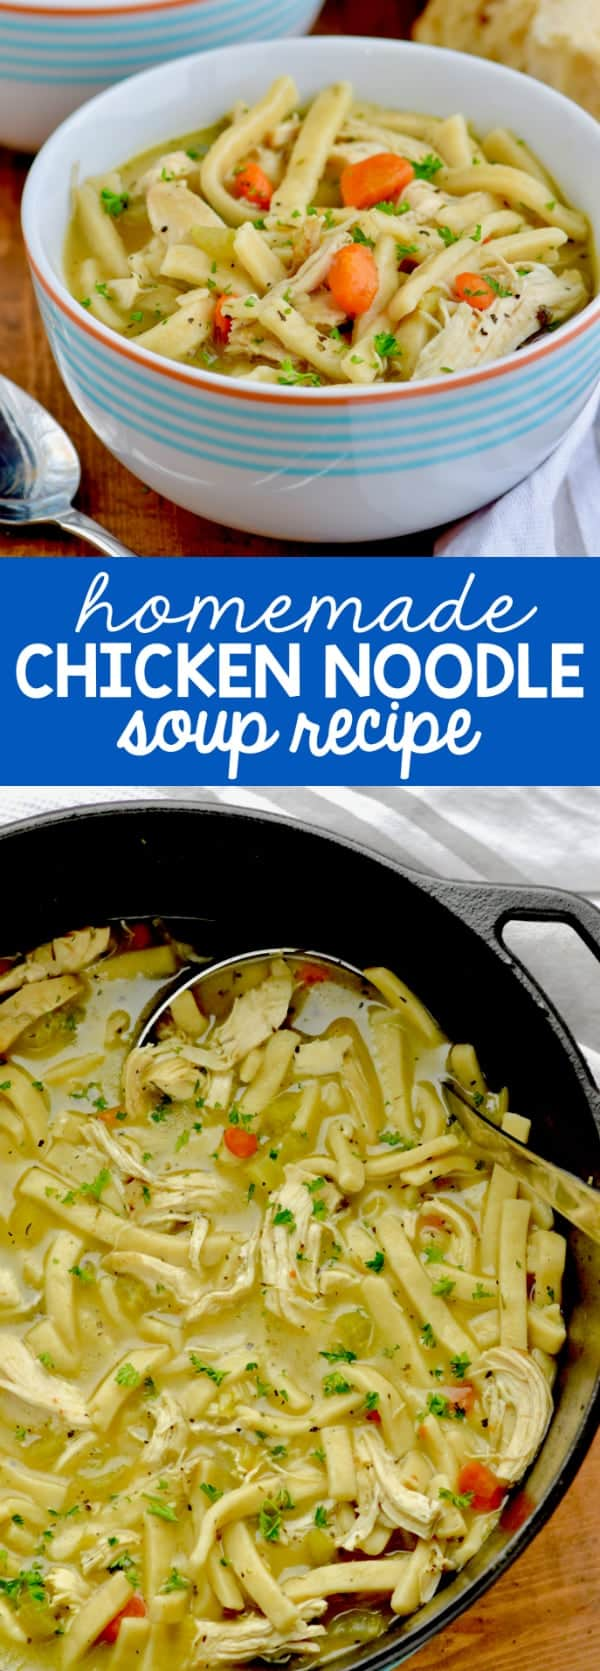 The Homemade Chicken Noodle Soup is a beautiful golden brown color with pops of orange and green from the carrots and celery.